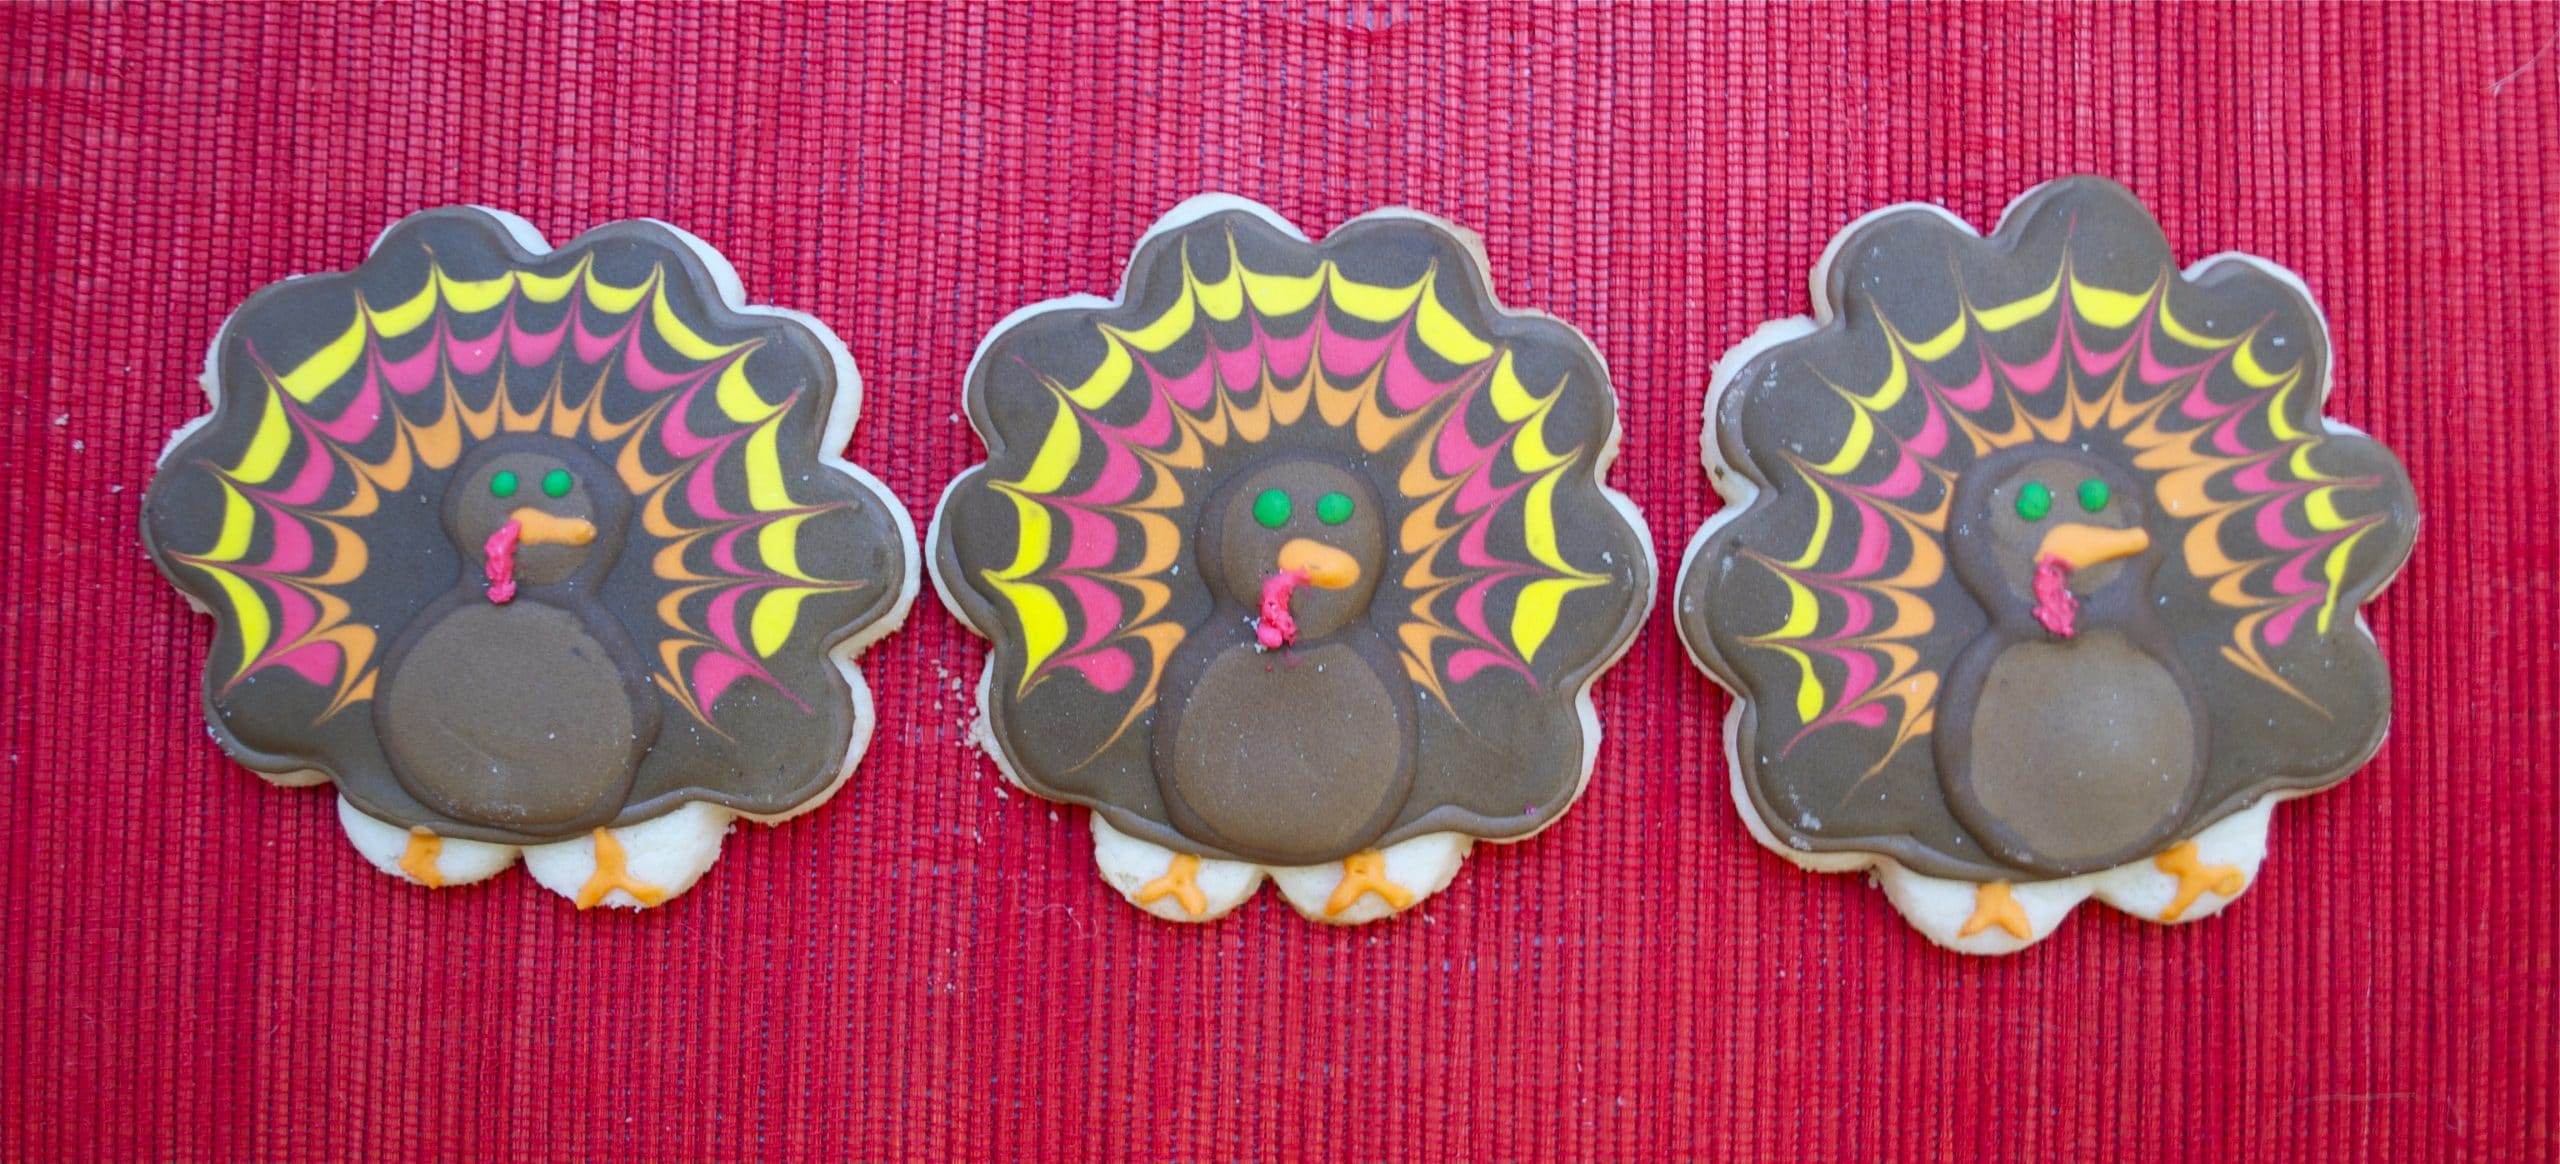 Gluten-Free Turkey Sugar Cookies